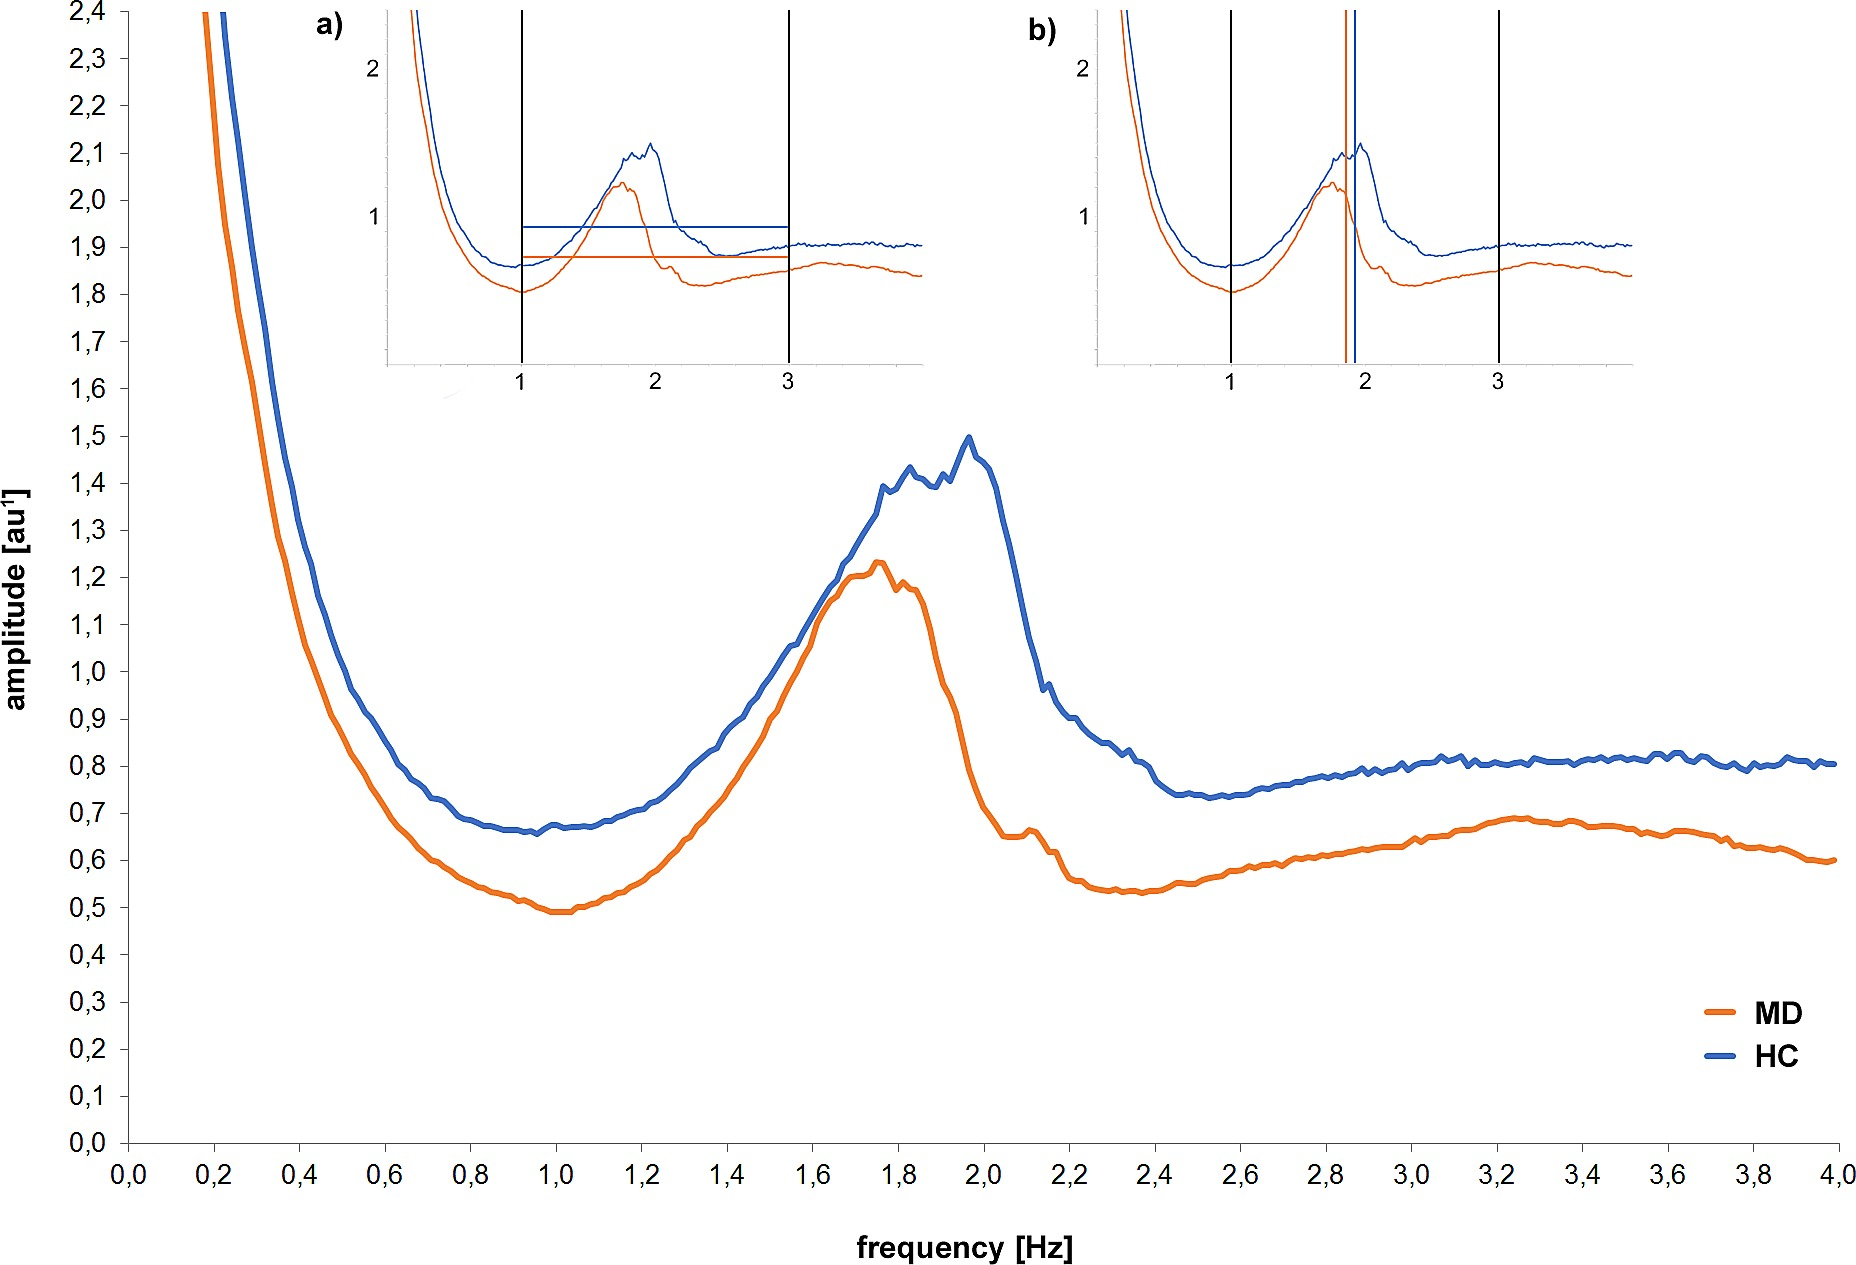 Spectral analysis of acceleration (frequency and amplitude) of MD